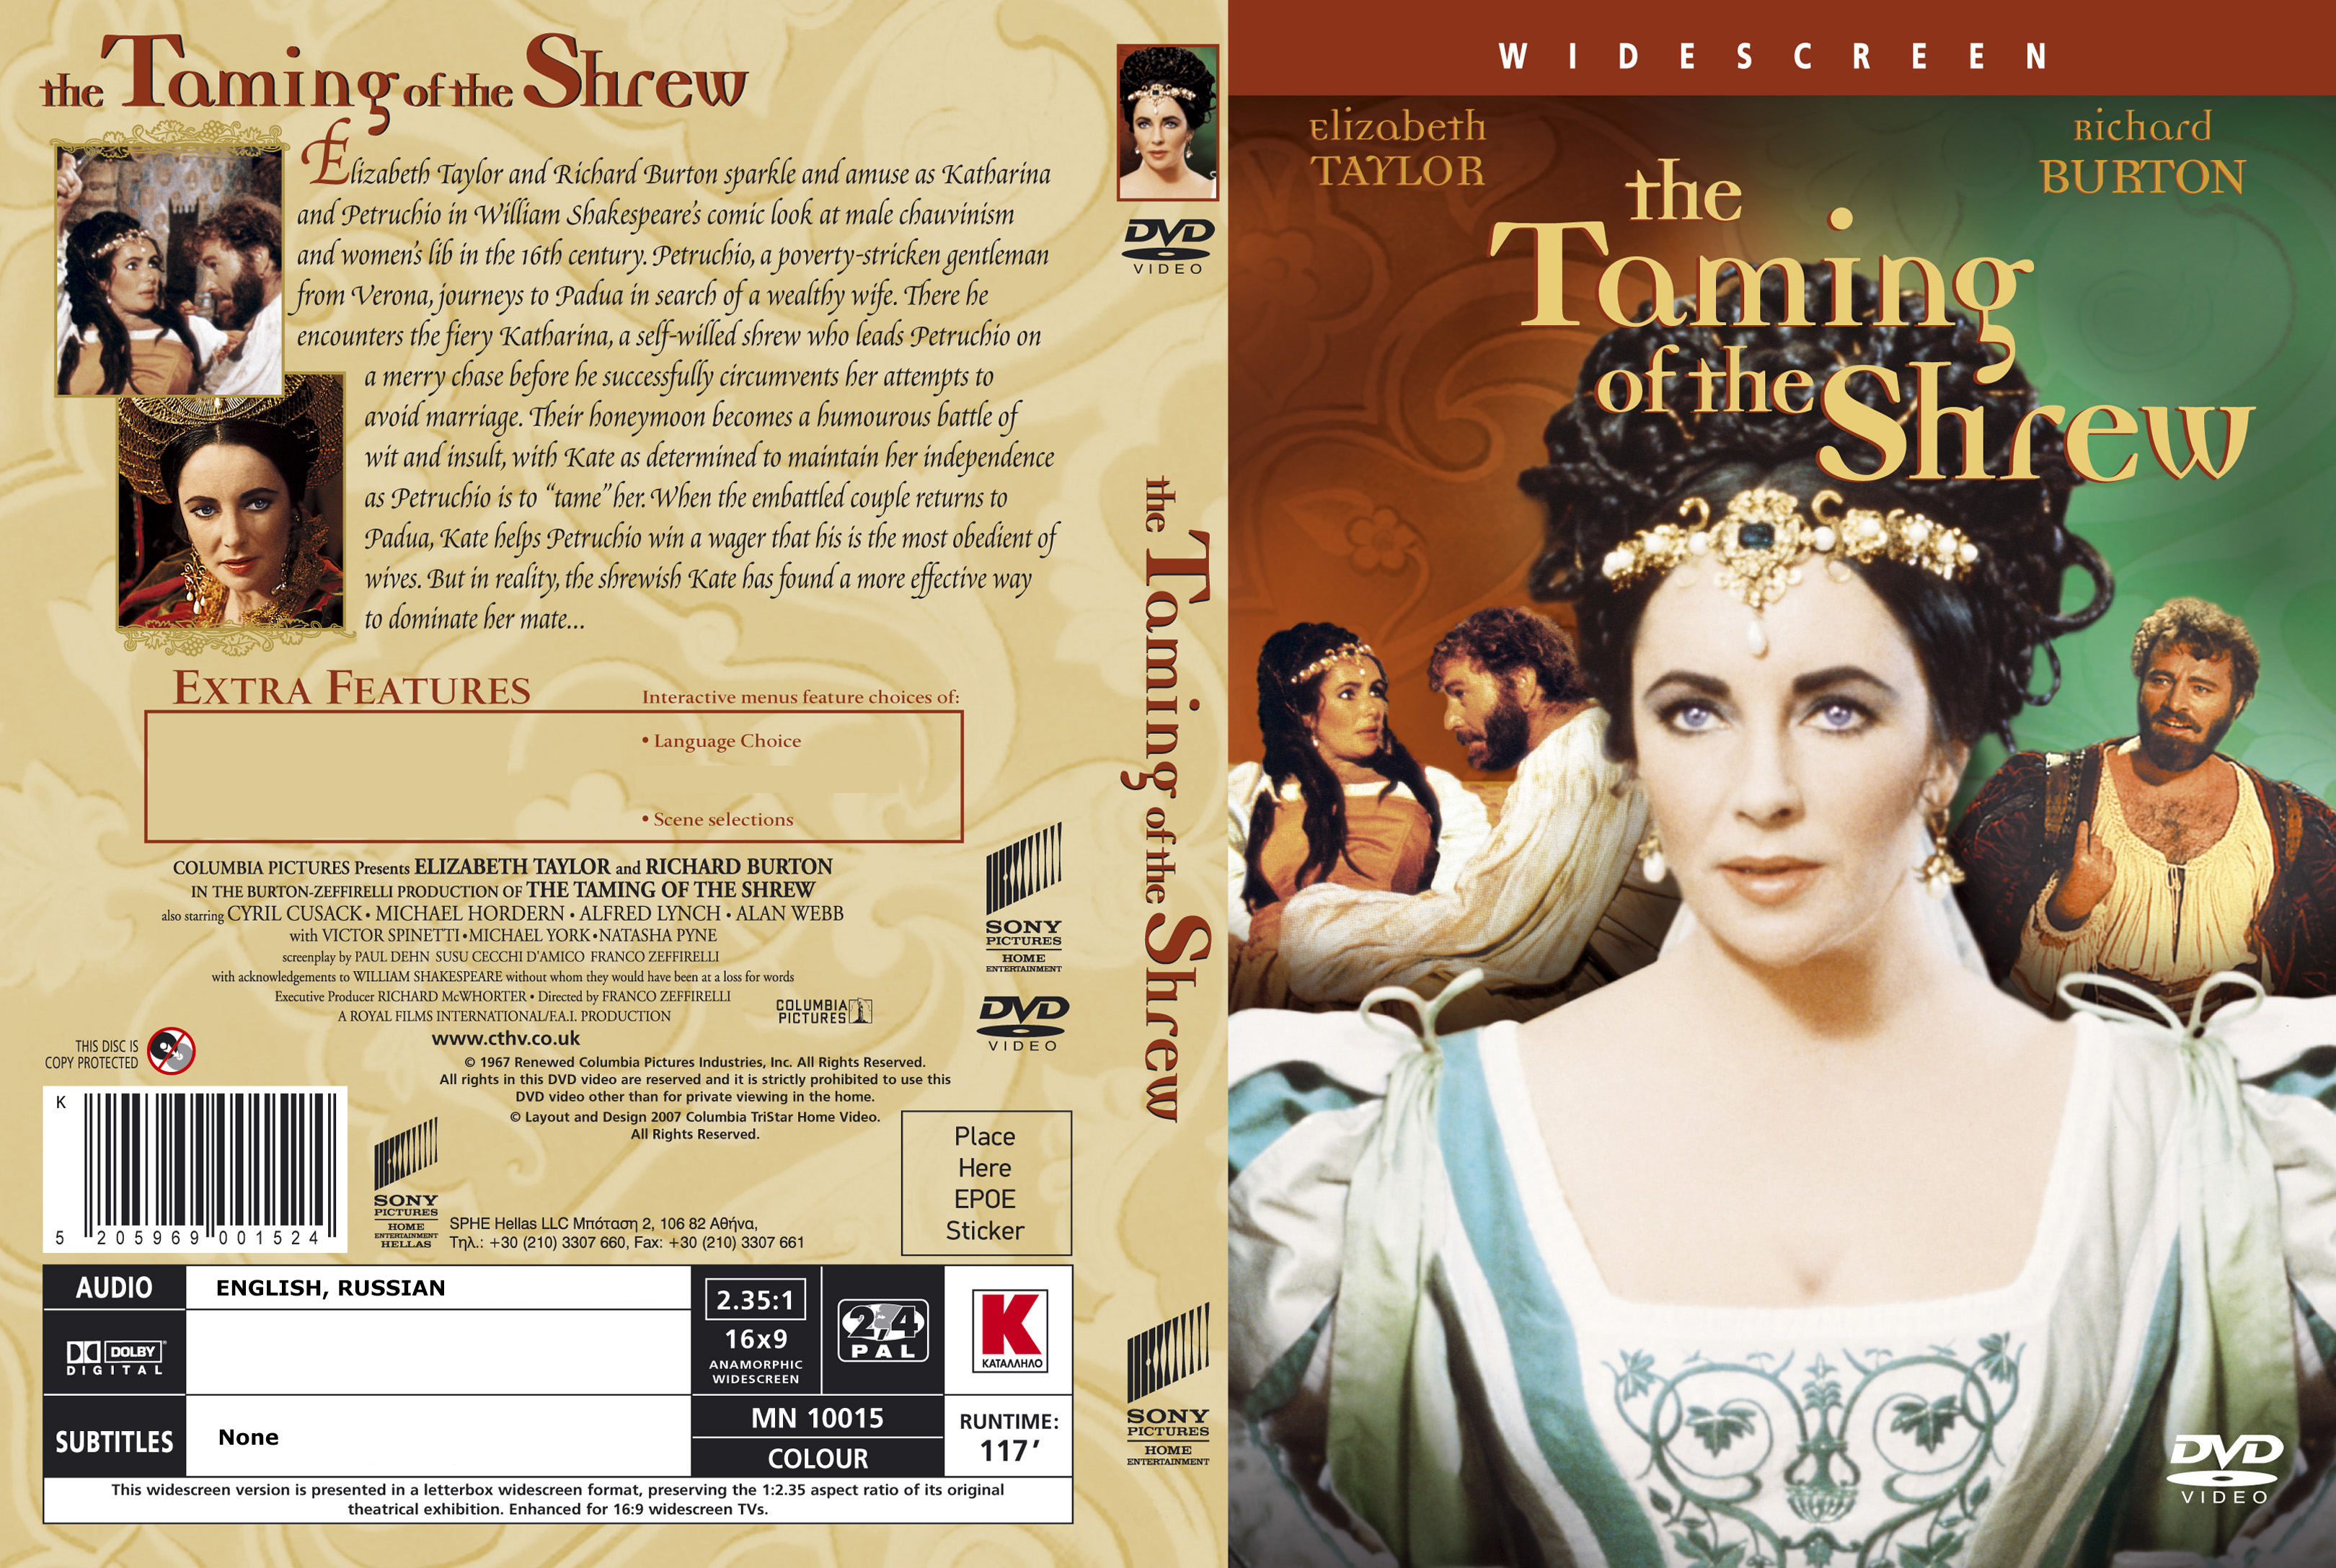 The Taming of the Shrew (1967)